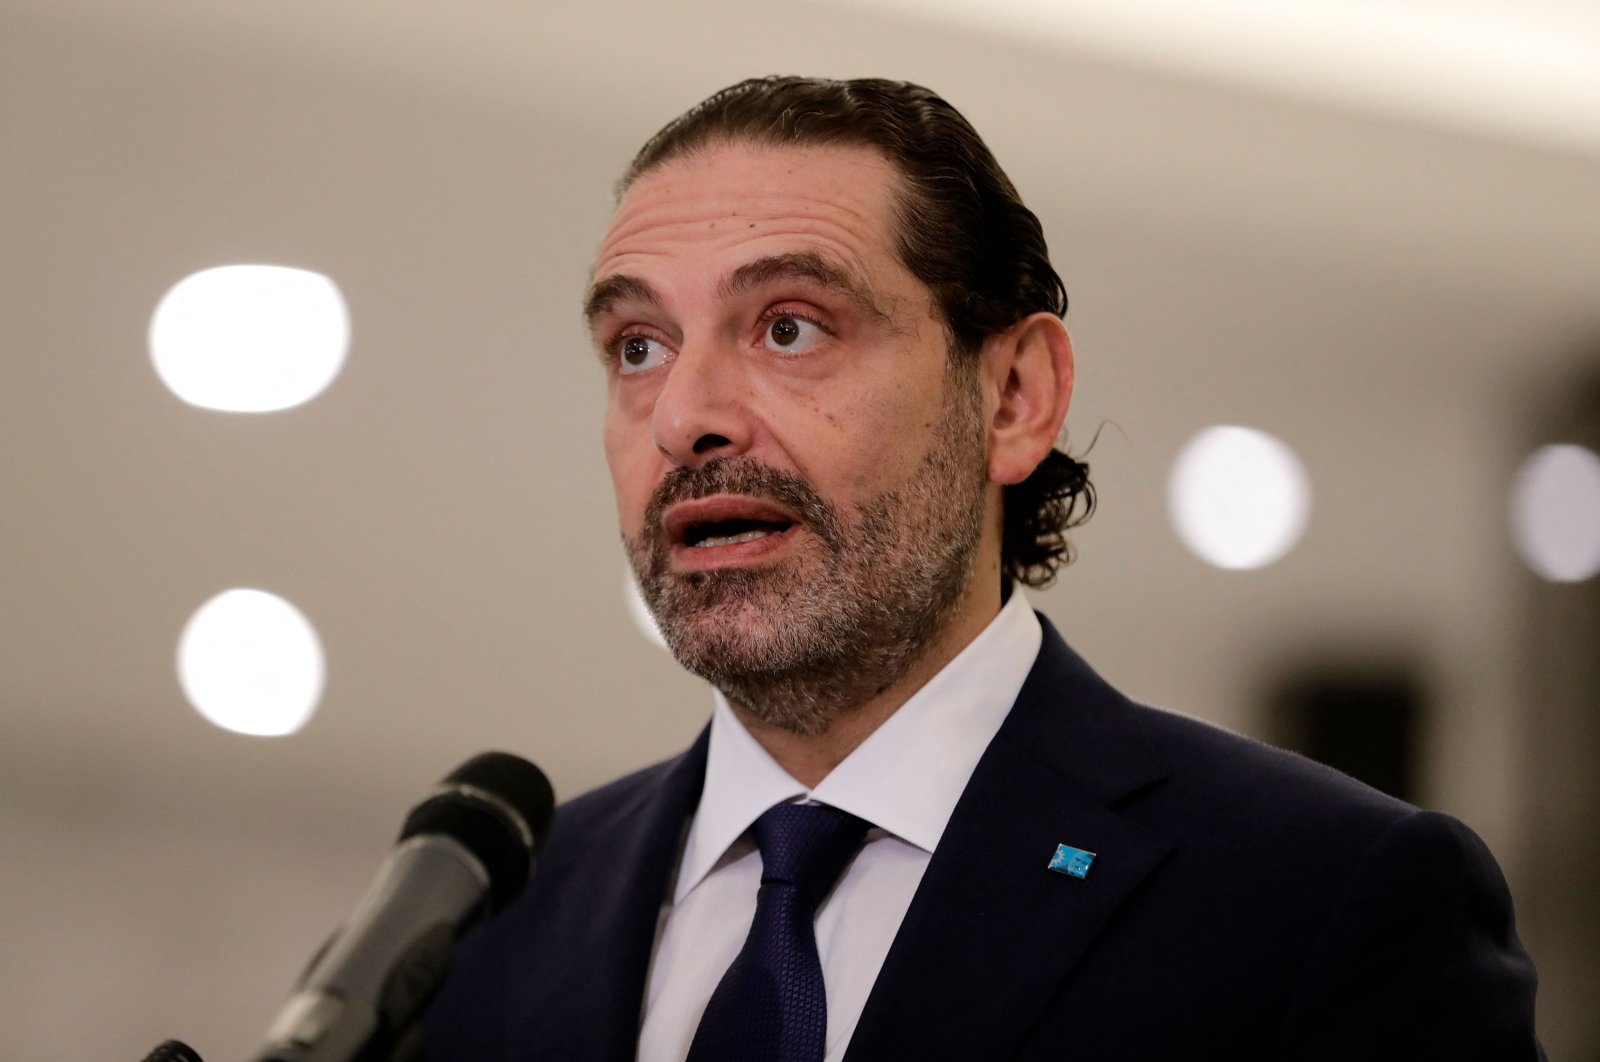 Former Lebanese Prime Minister Saad Hariri delivers a statement after the president named him to form a new cabinet, at the presidential palace in Baabda, east of the capital Beirut, Lebanon, Oct. 22, 2020. (AFP Photo)